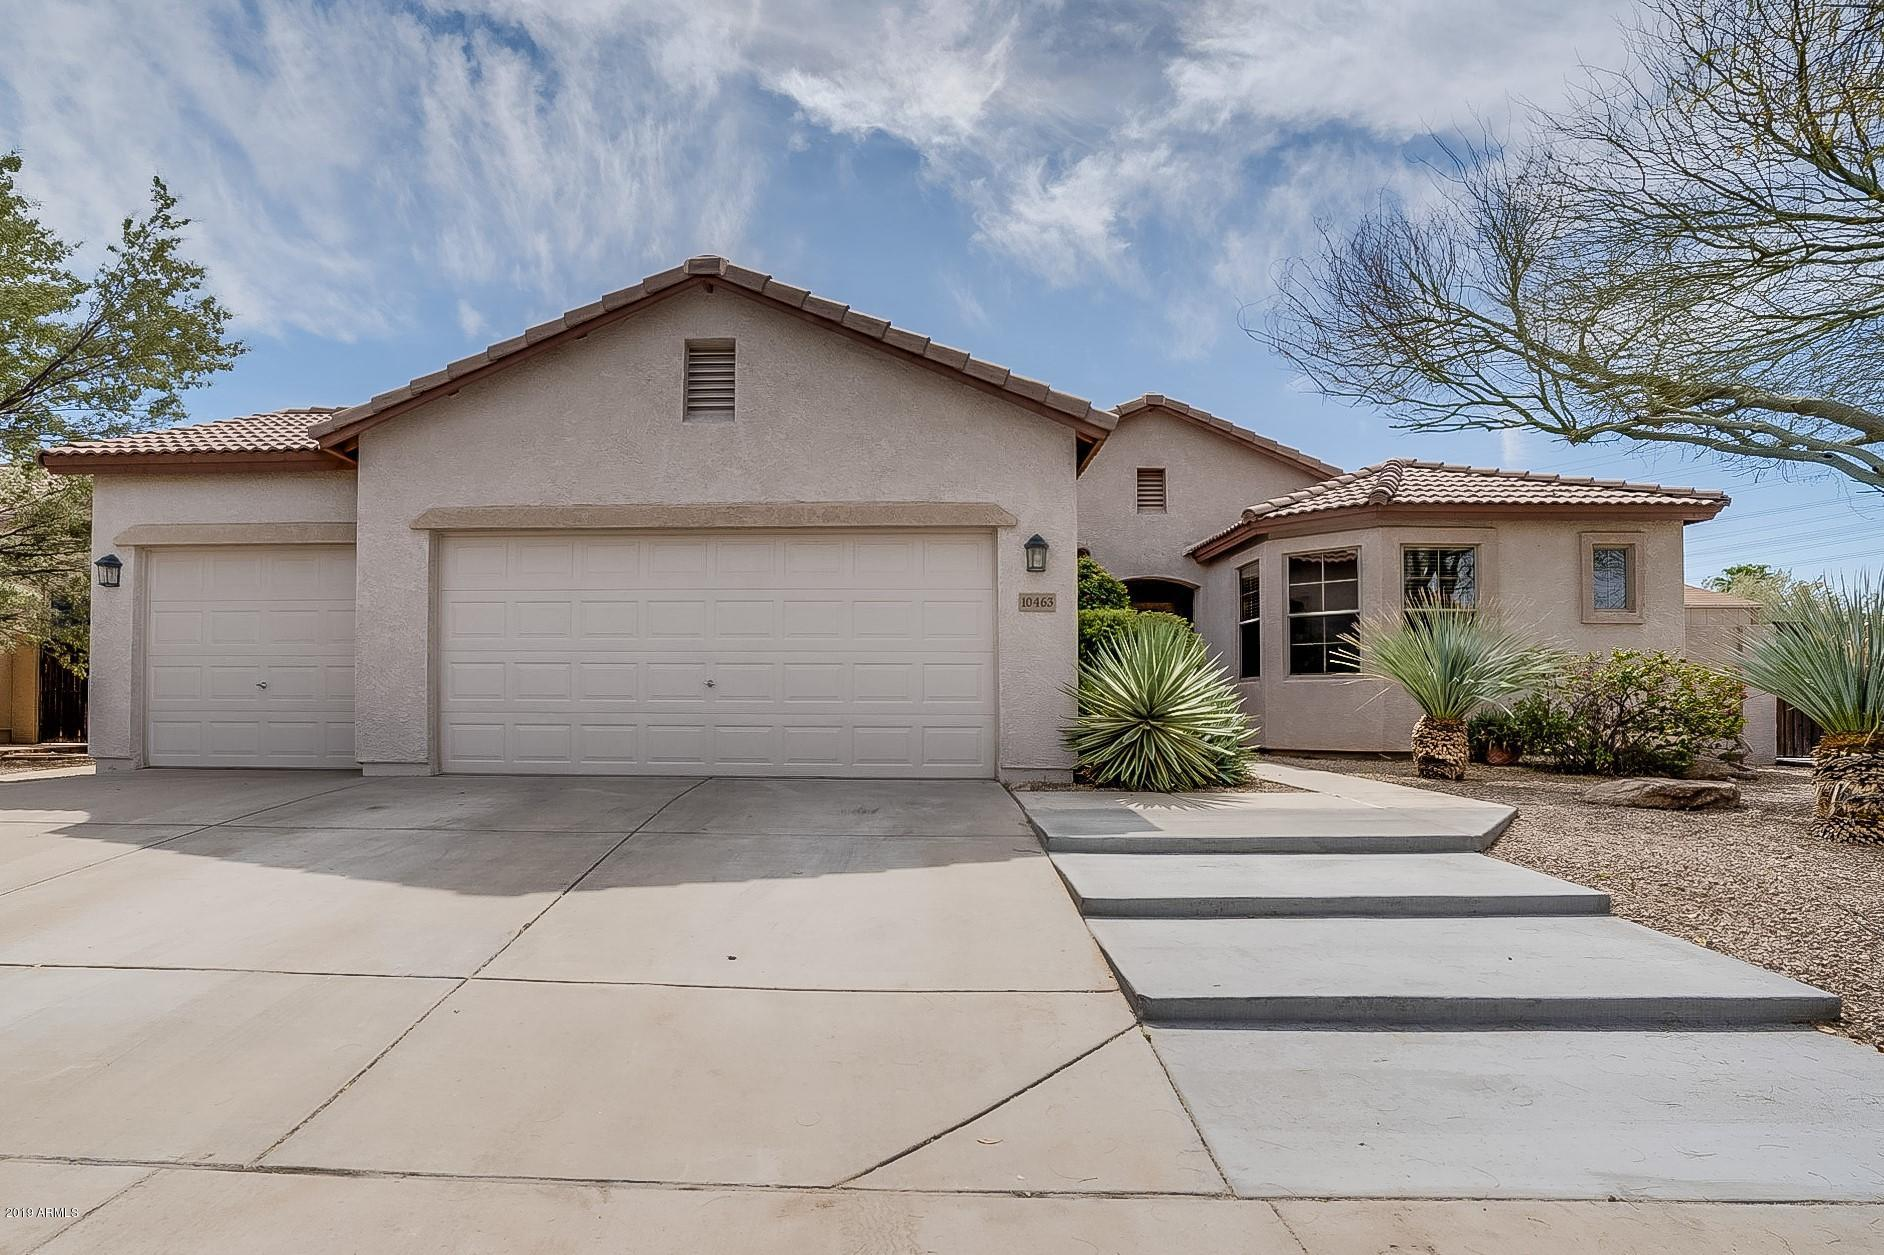 Photo of 10463 E POSADA Avenue, Mesa, AZ 85212